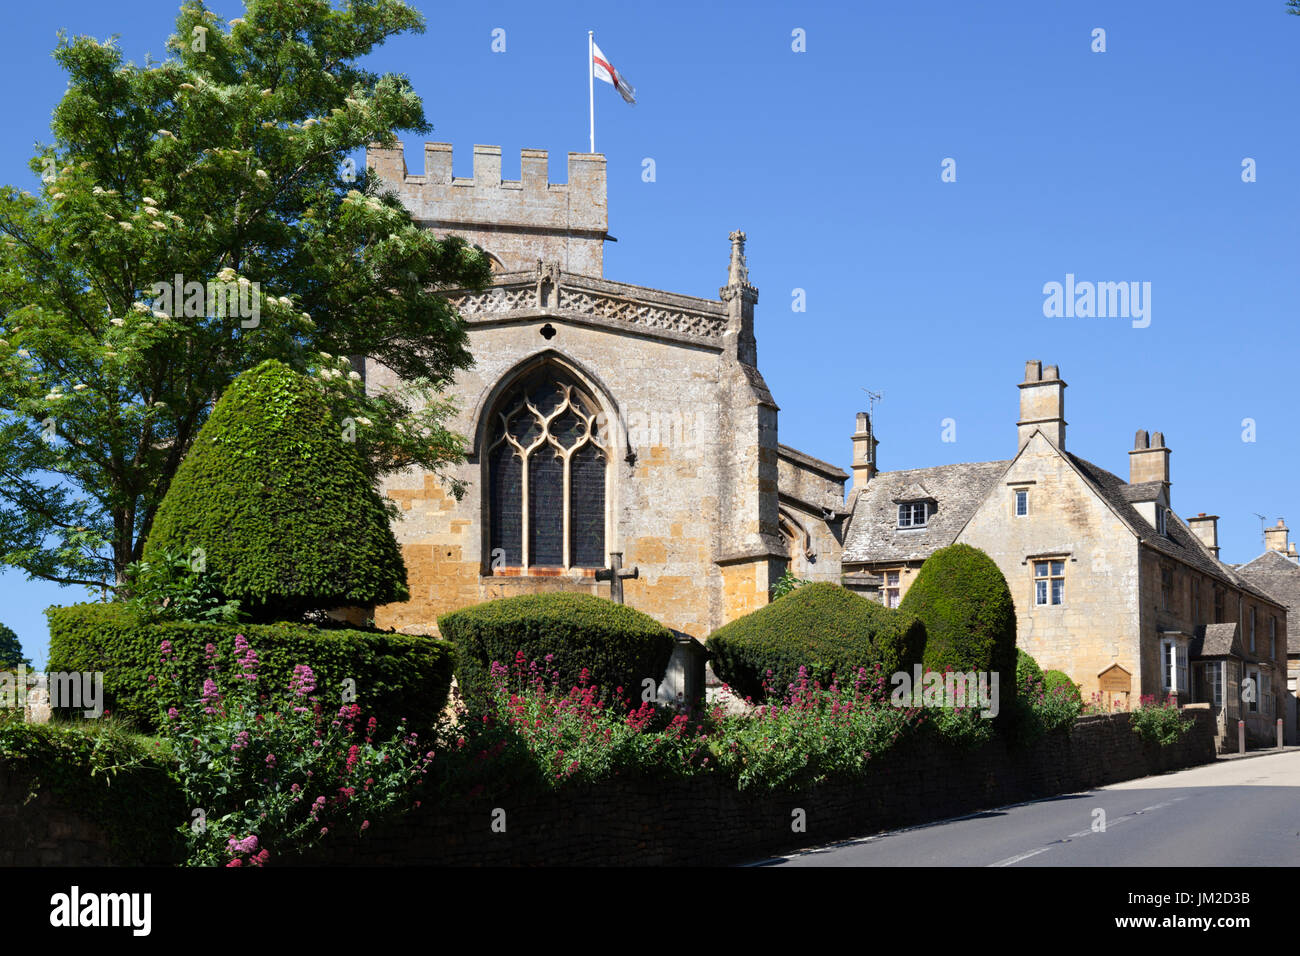 Church of St Lawrence and cotswold cottages, Bourton-on-the-Hill, Cotswolds, Gloucestershire, England, United Kingdom, Europe - Stock Image